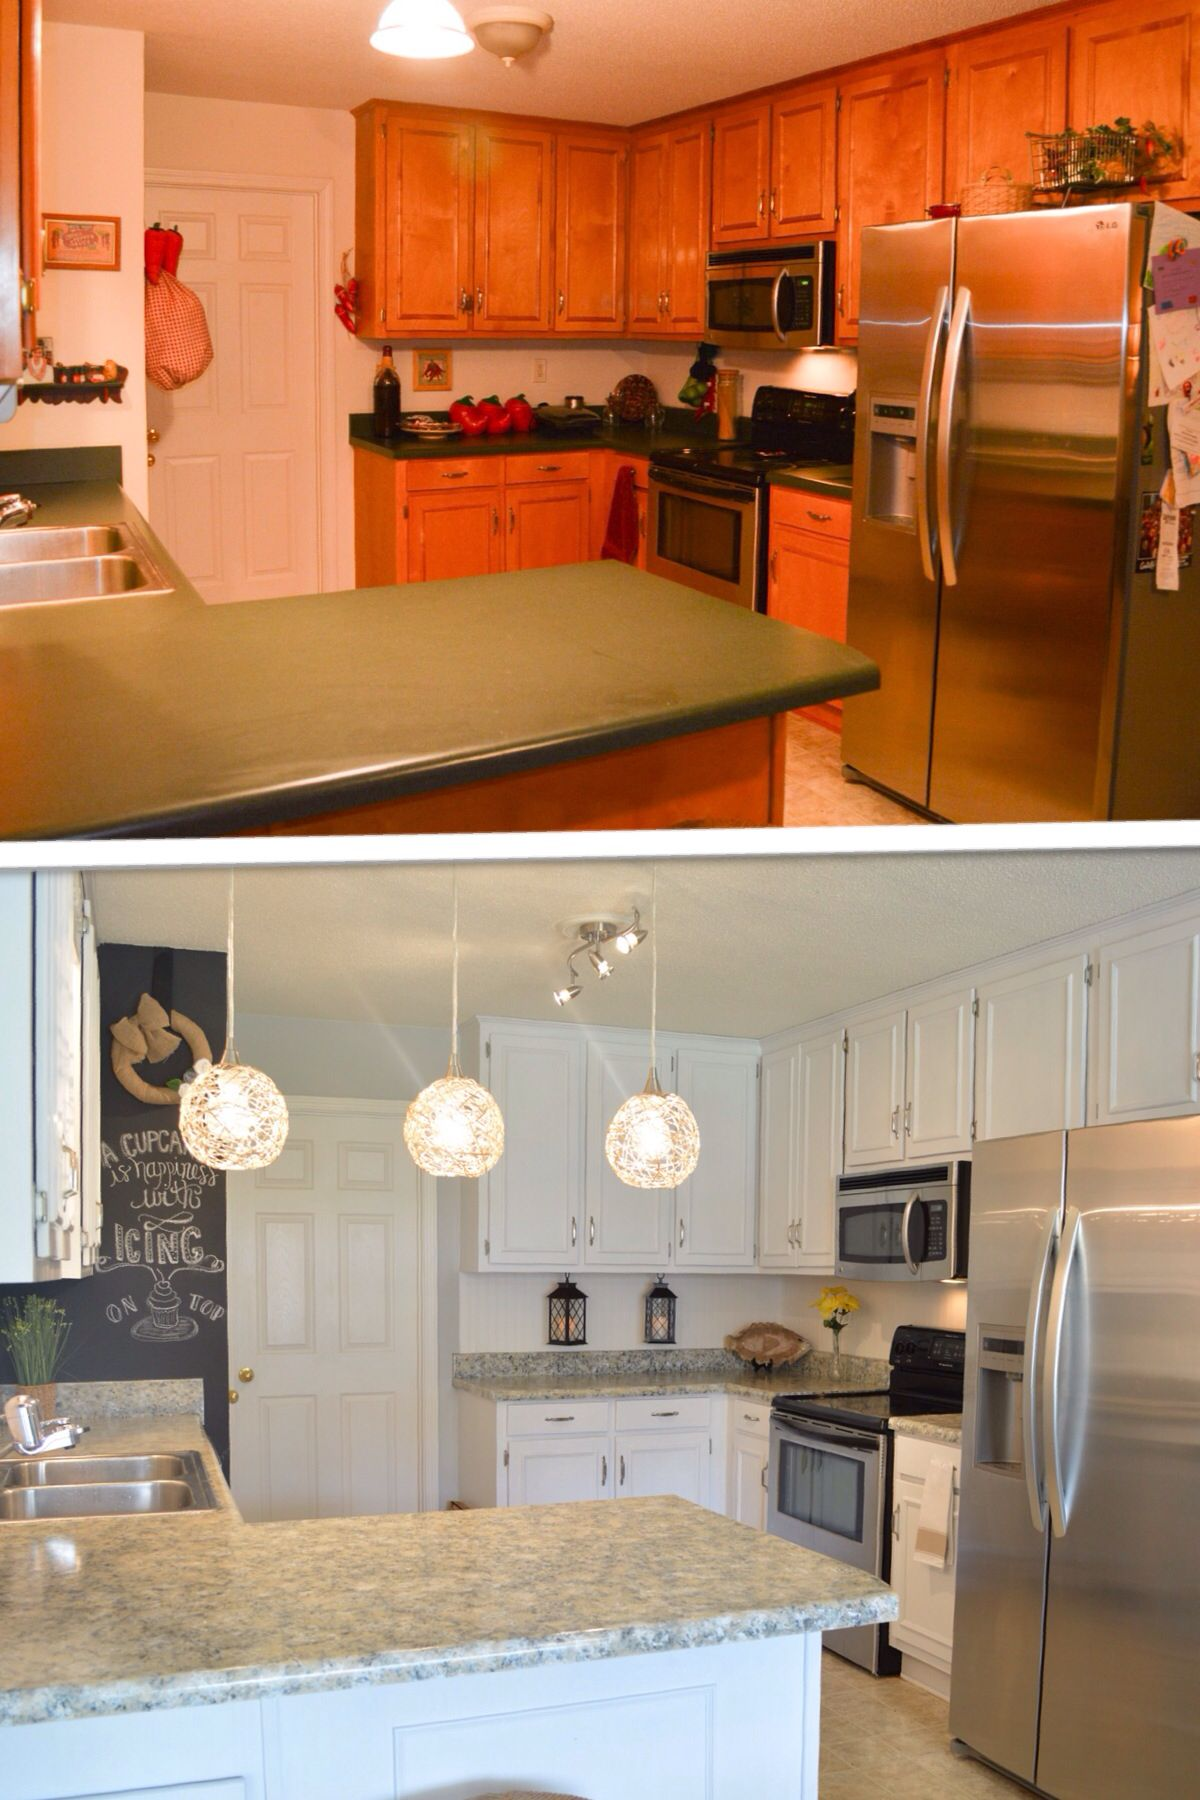 Charmant Our Kitchen Makeover For Less Than $300 Using Giani Granite Countertop  Paint Kit In Sicilian Sand, Their Nuvo Cabinet Paint Kit In Titanium White,  ...